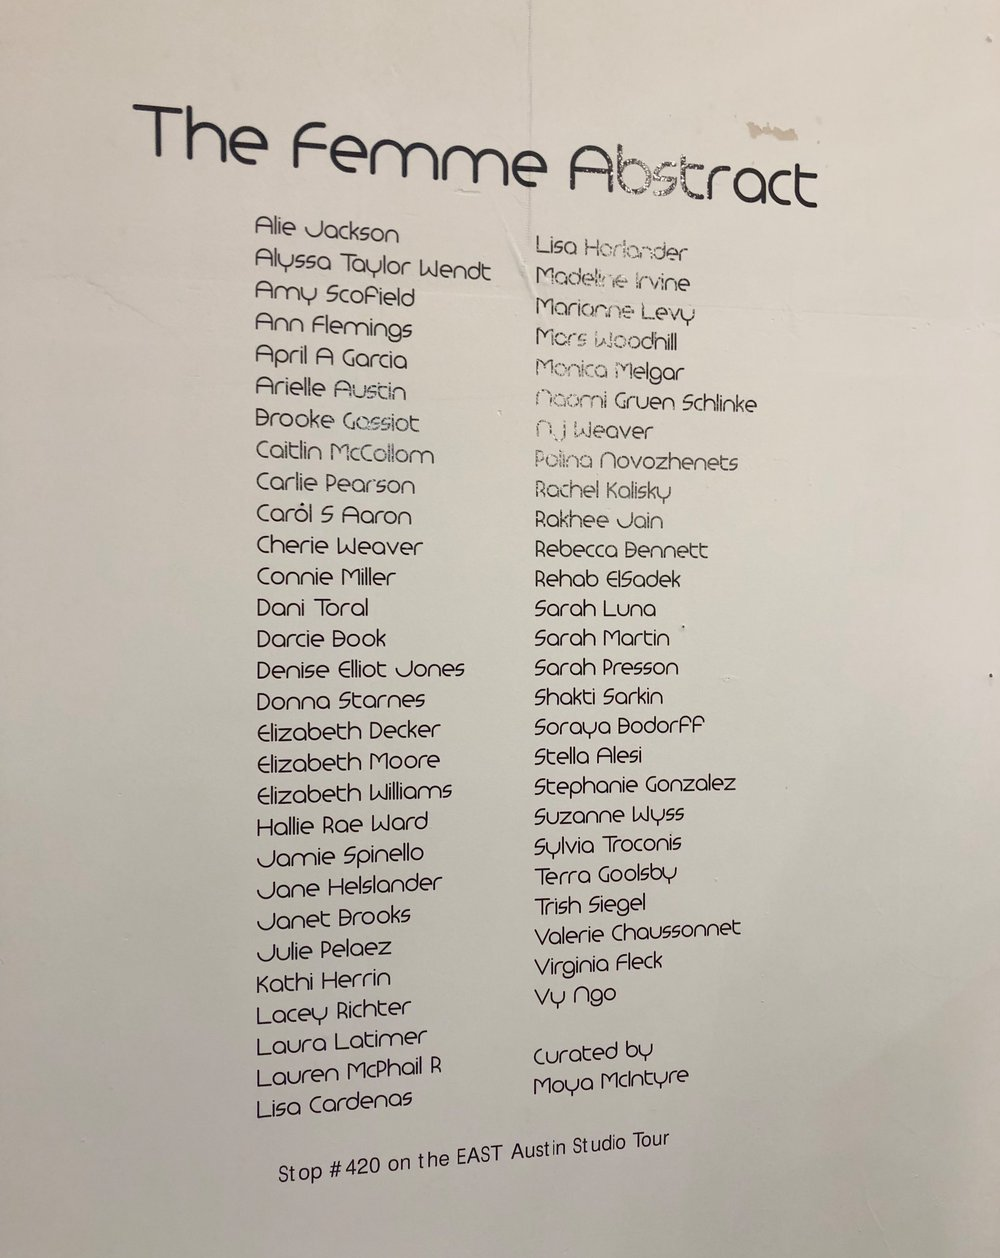 list+of+artists+in+femme+abstract.jpg